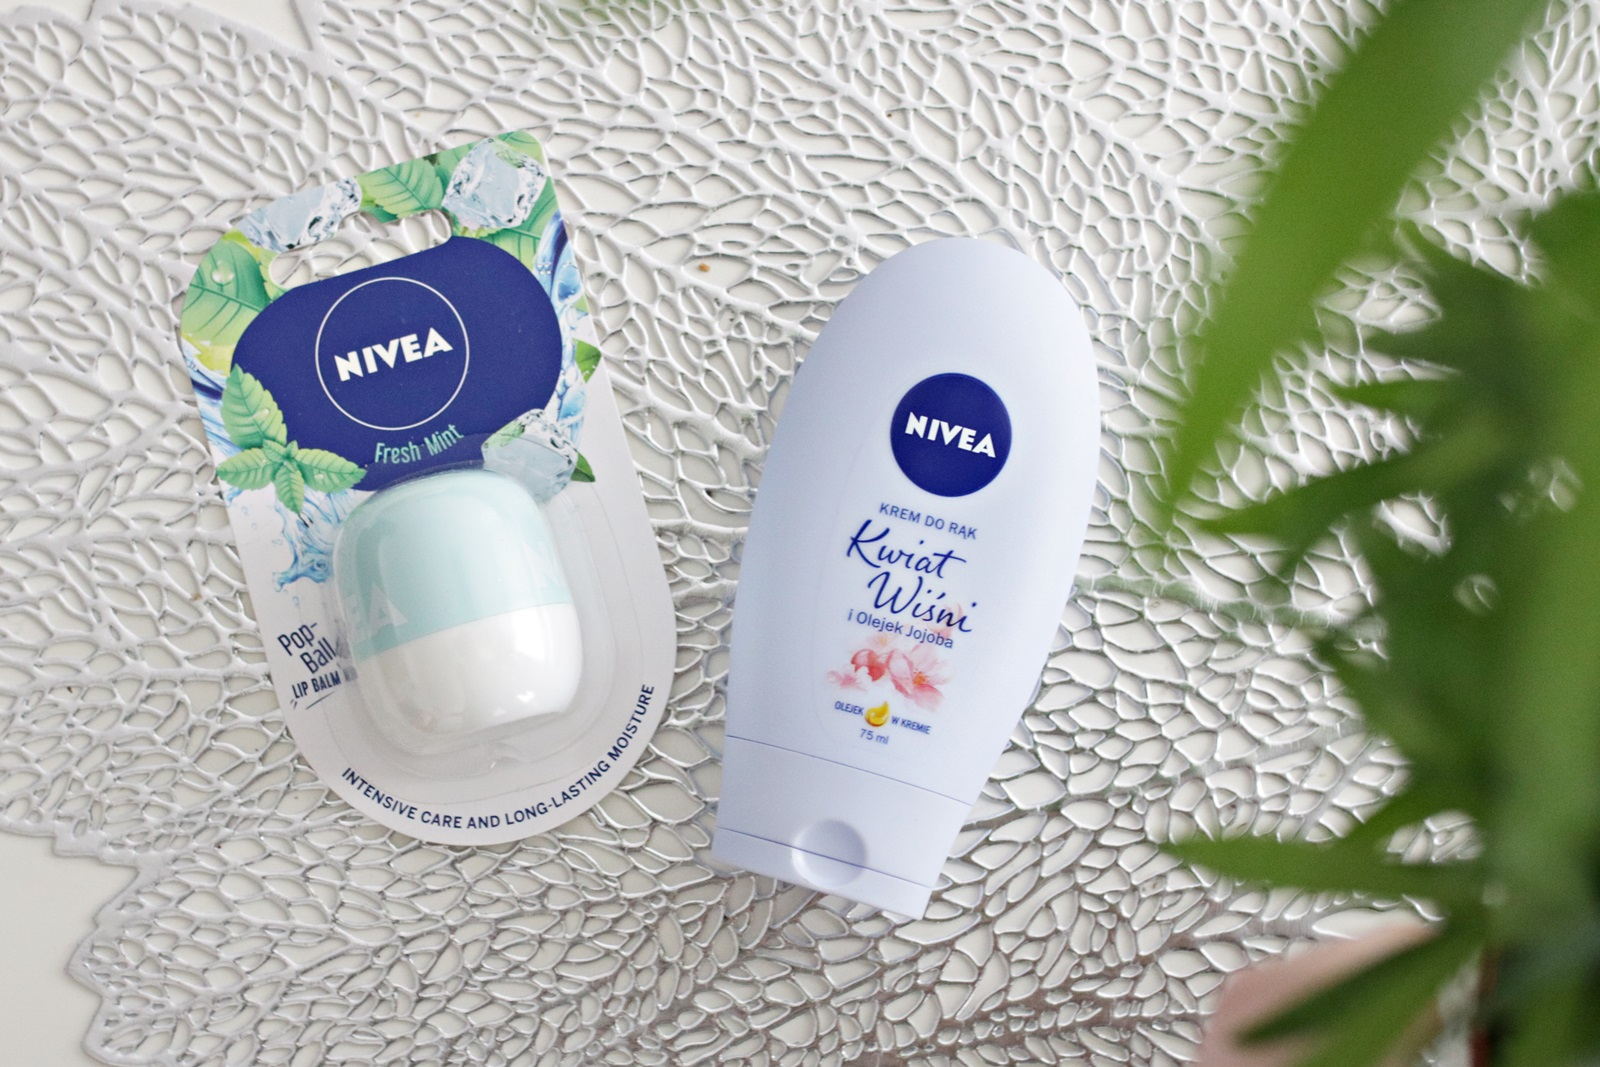 Nivea - krem do rąk